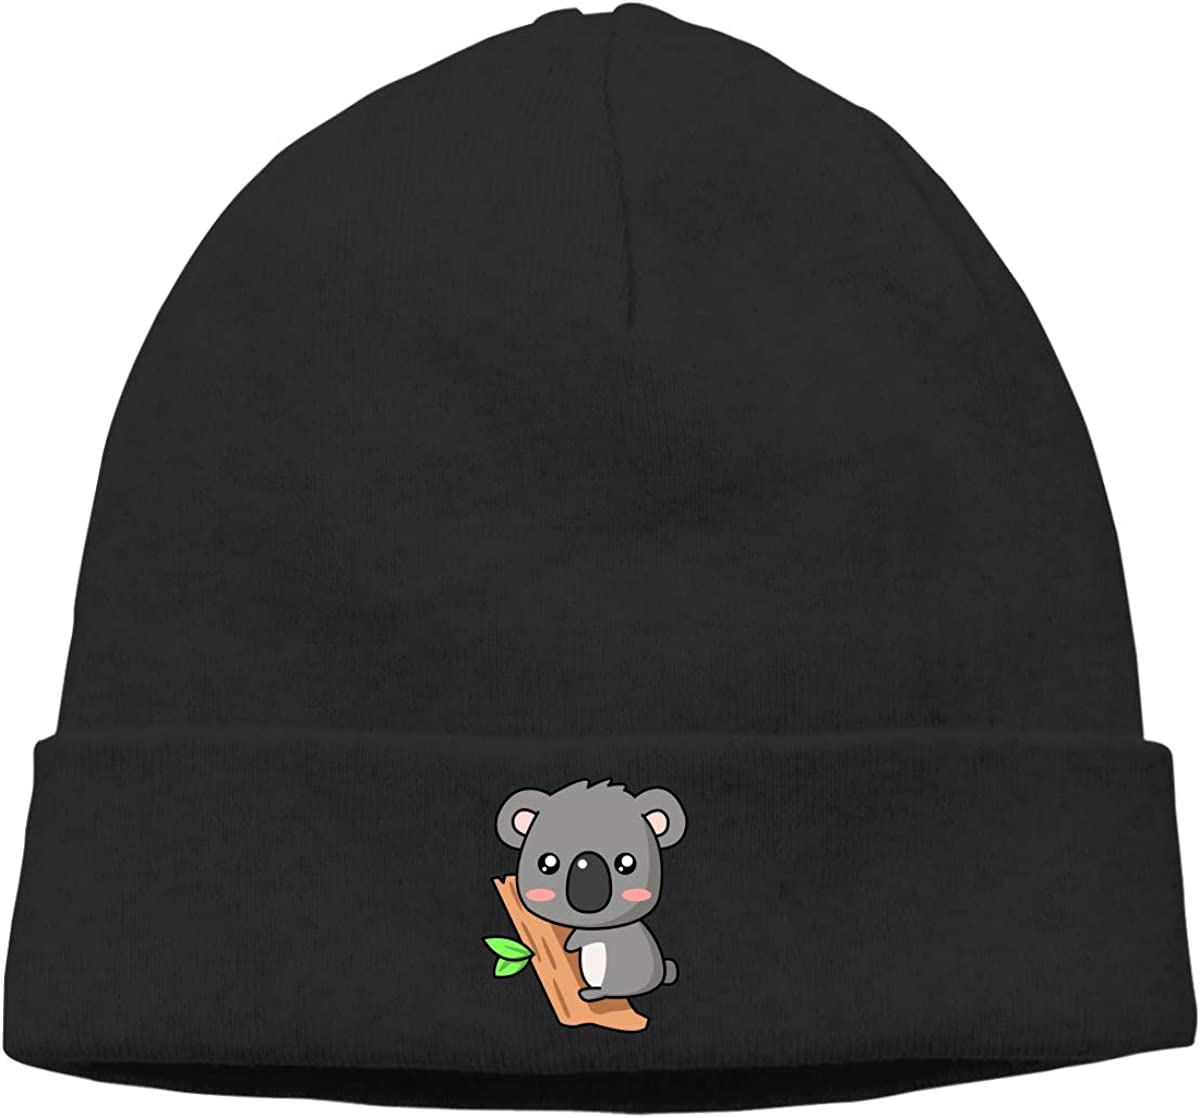 Cute Koala Cap Unisex Cuffed Deliciously Soft Daily Plain Skull Ski Slouchy Hat